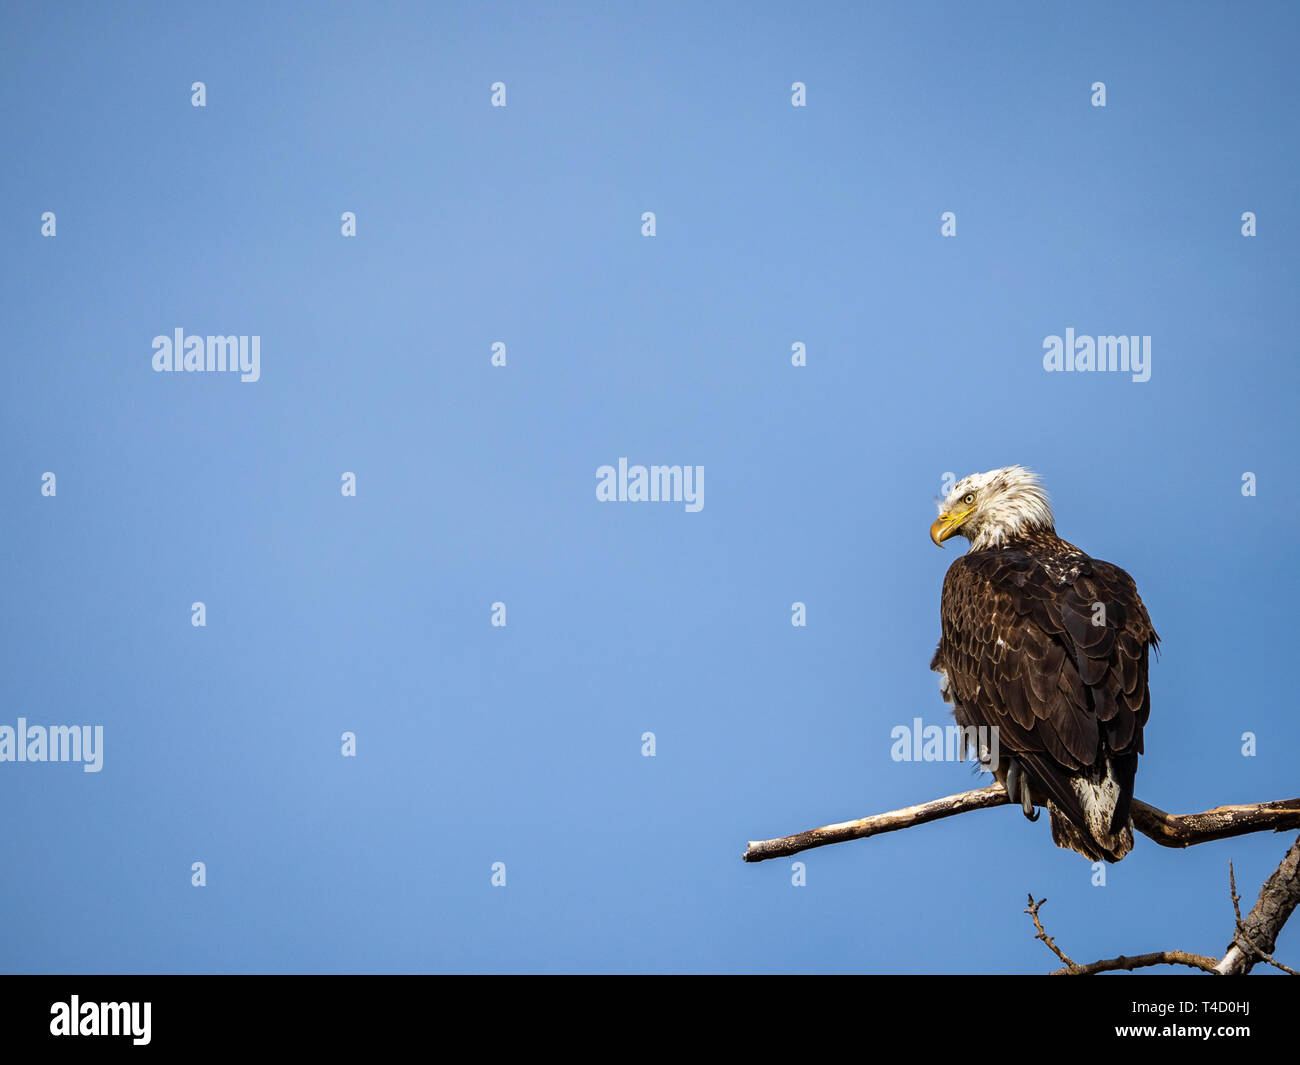 Young Bald Eagle (Haliaeetus leucocephalus) perched on the branches of a cottonwood tree against a overlooking Barr Lake in Brighton, Colorado, USA - Stock Image